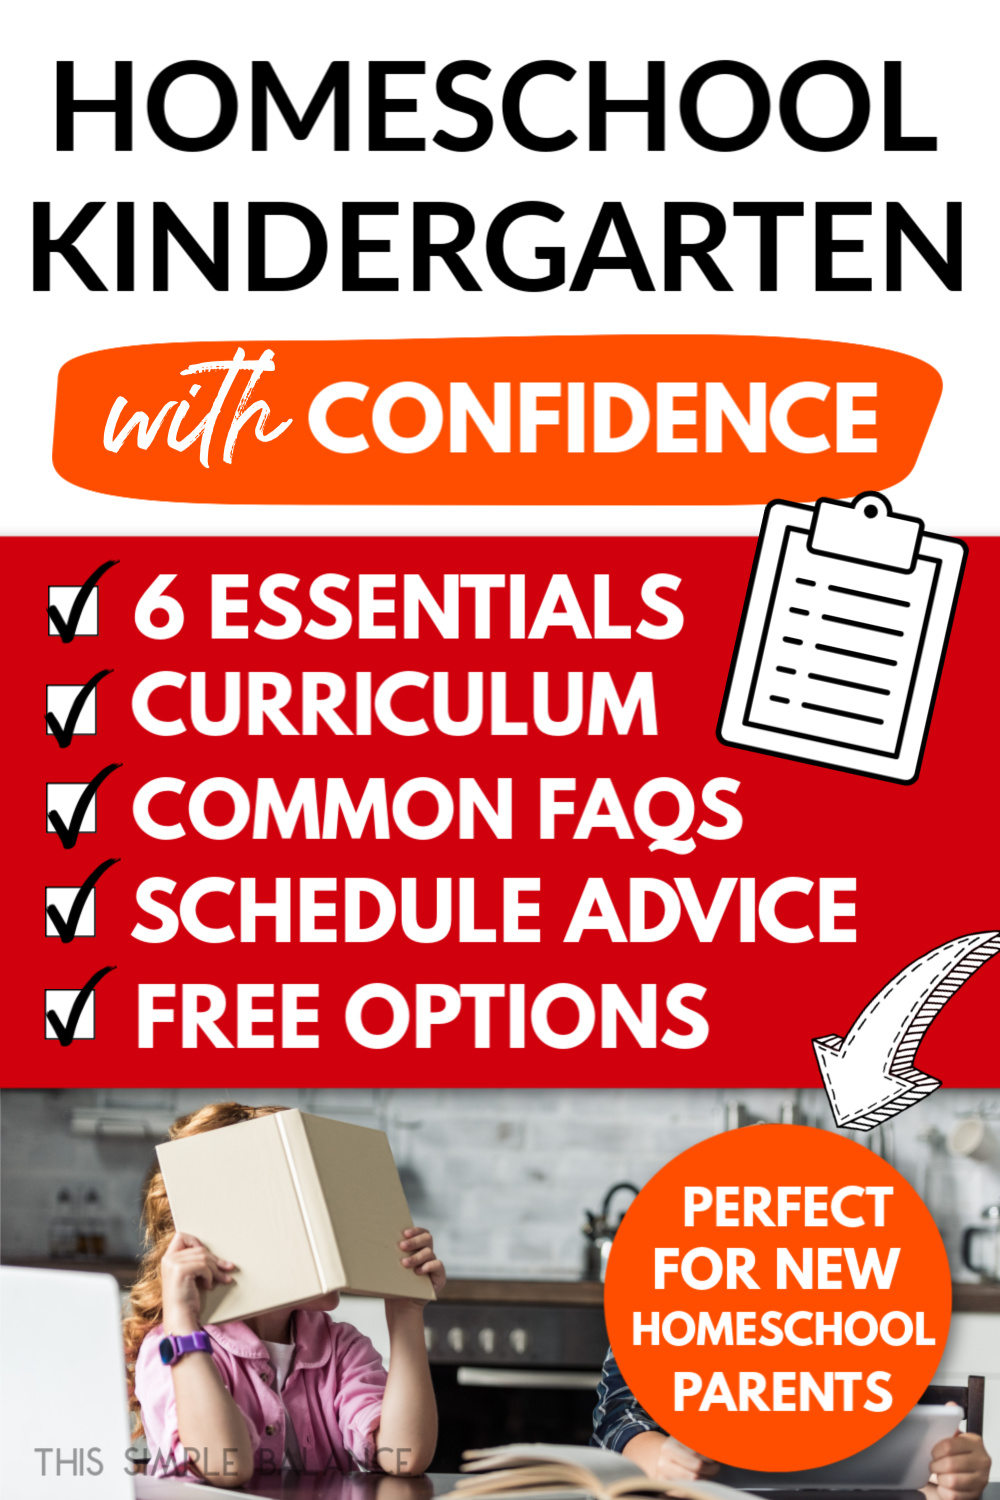 How to Homeschool Kindergarten: 6 Essentials for a